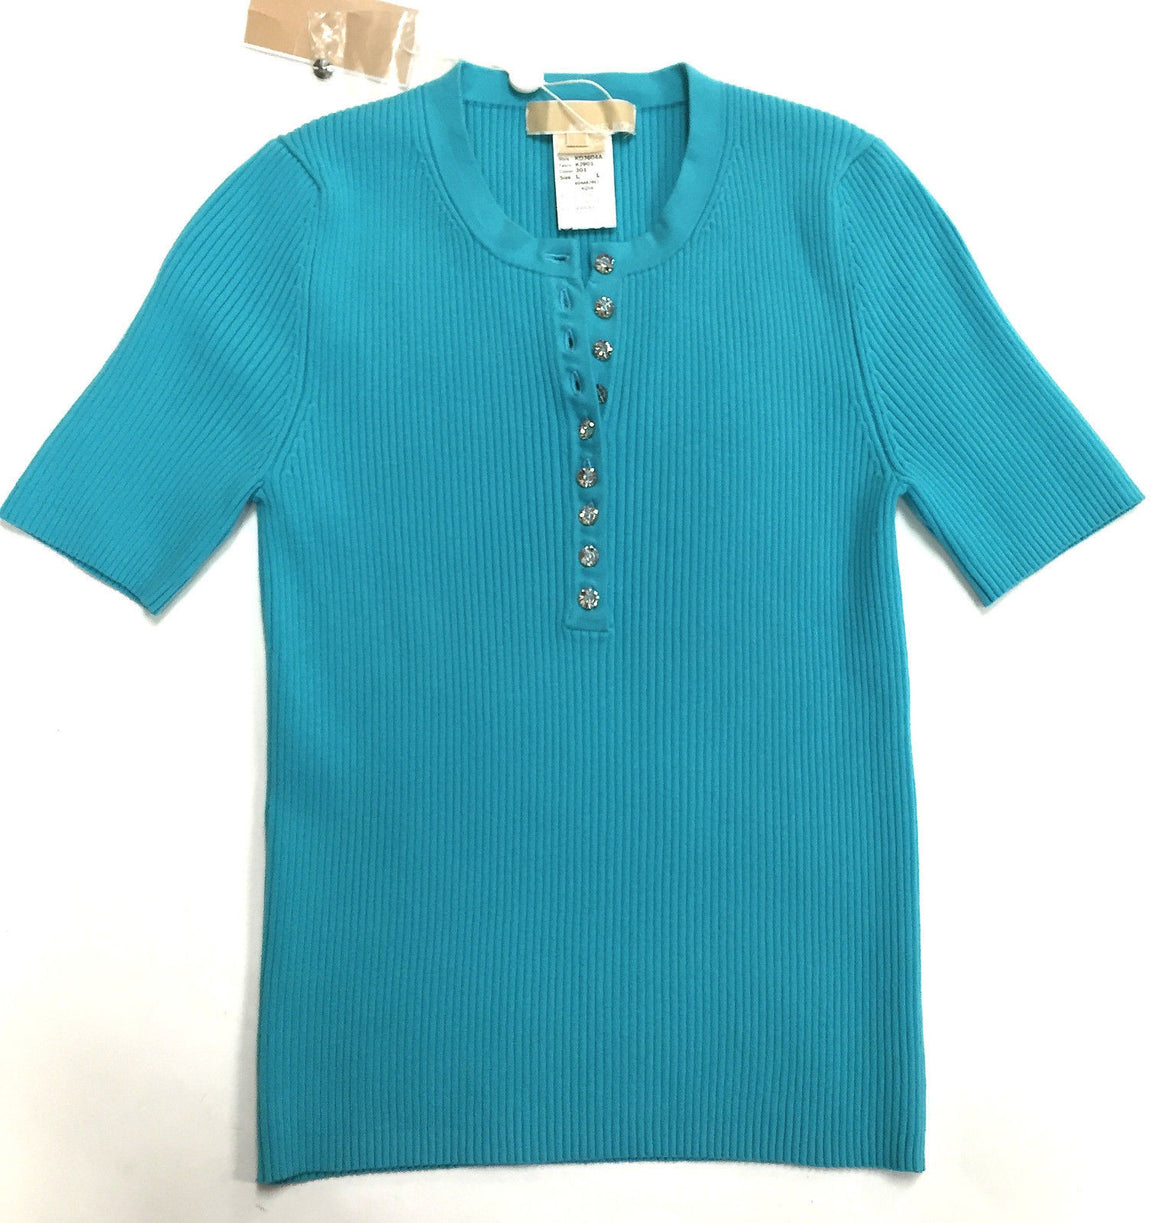 bisbiz.com MICHAEL KORS  New with Tags Turquoise Cotton-Blend Short-Sleeve Top Size: L - Bis Luxury Resale